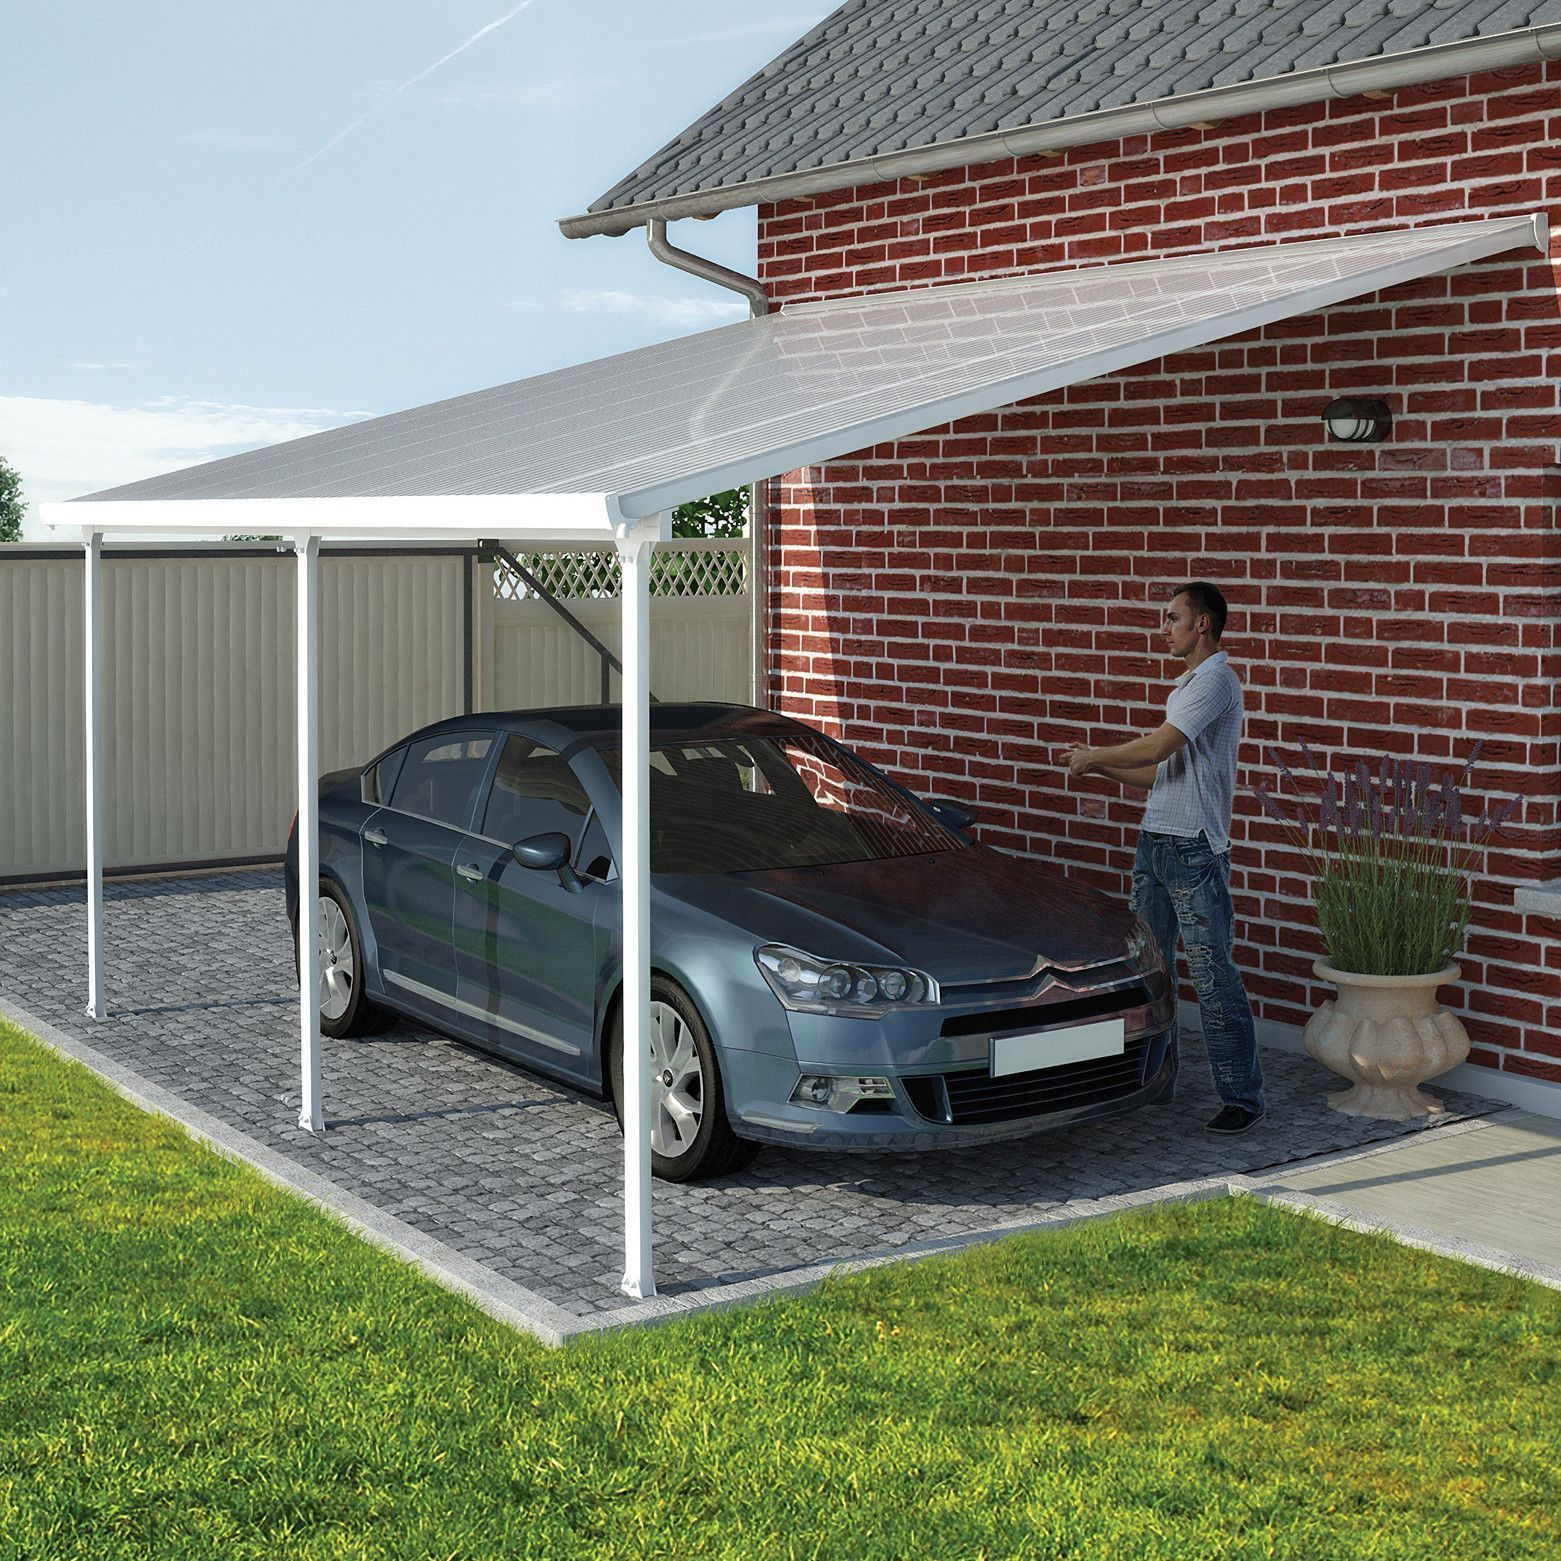 Feria Ft H X Ft W X Ft D Patio Cover Awning DIY - Carport off house